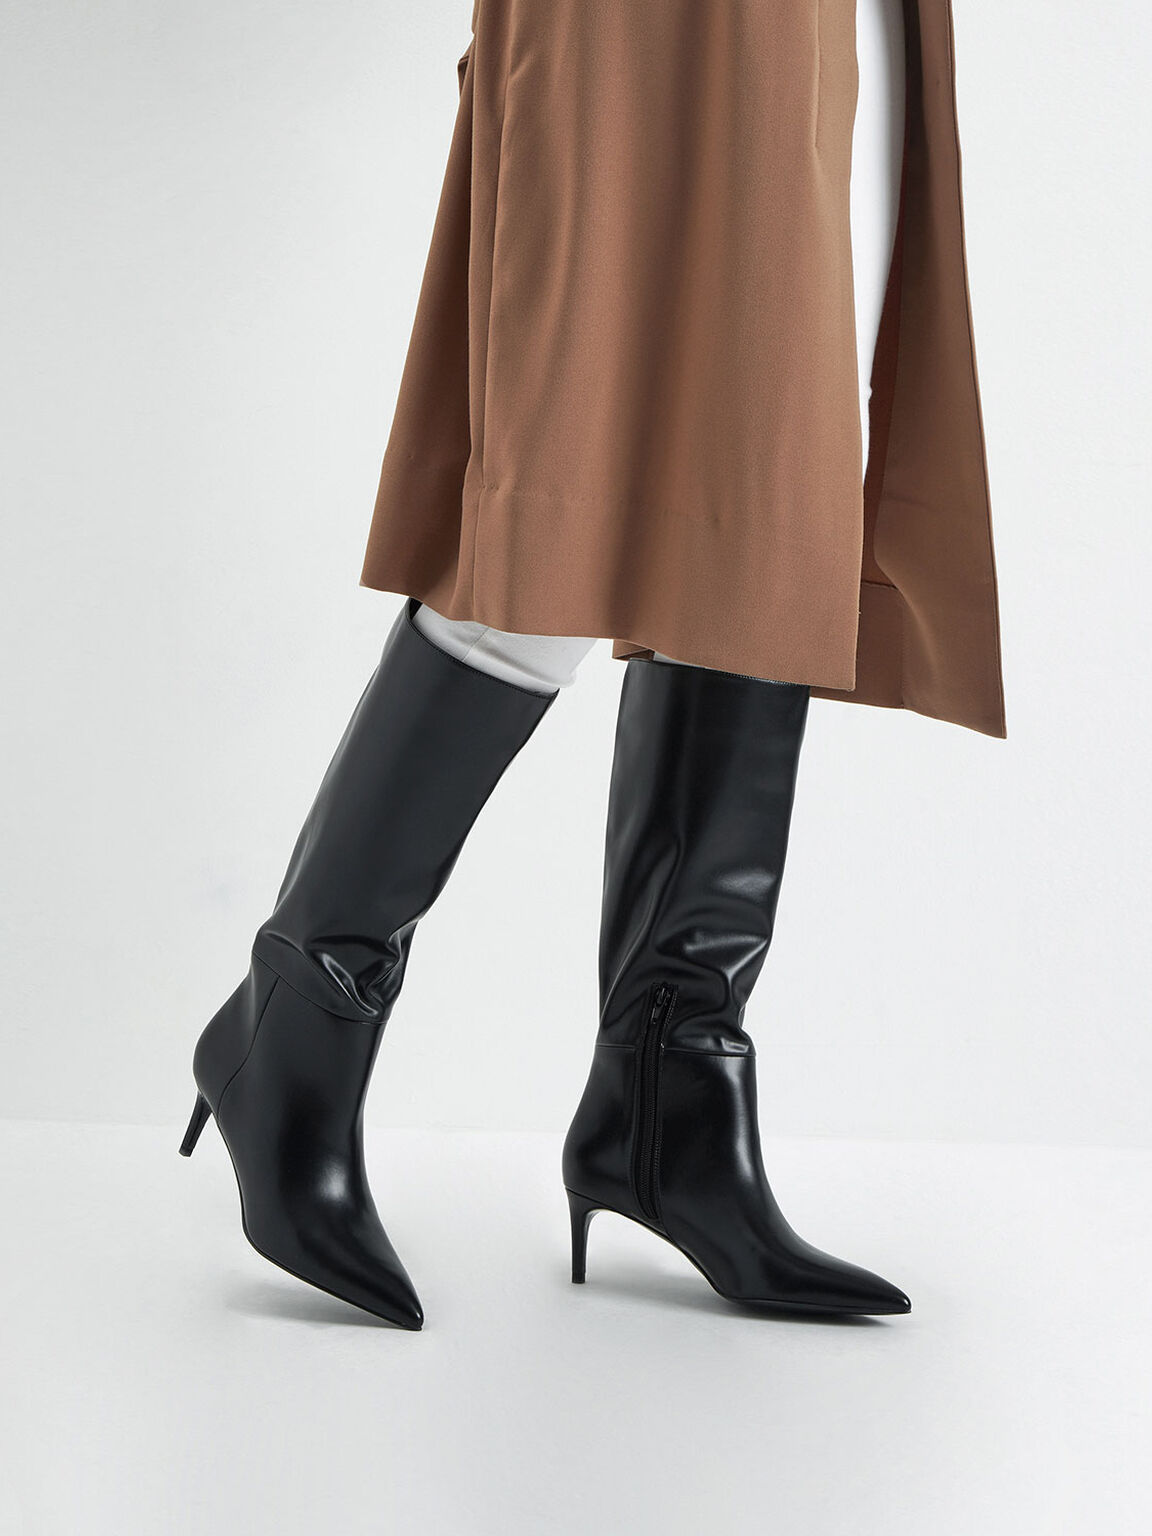 Knee High Boots, Black, hi-res